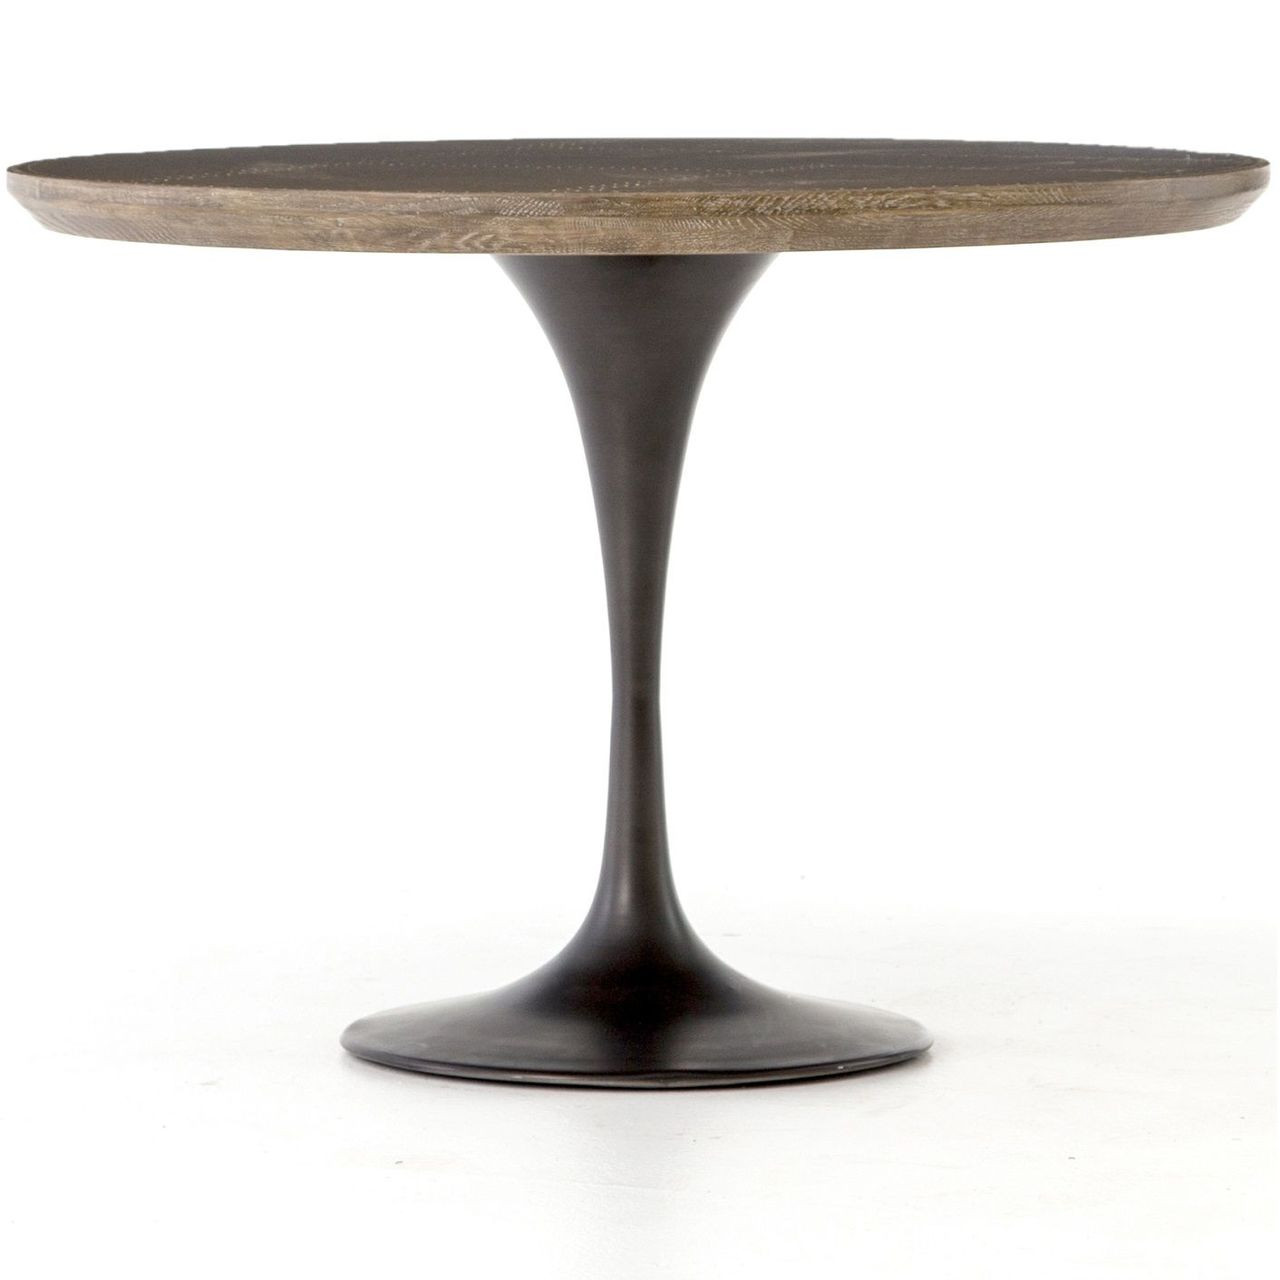 Aero Tulip Industrial Brass Clad Top Round Dining Table 42 Zin Home